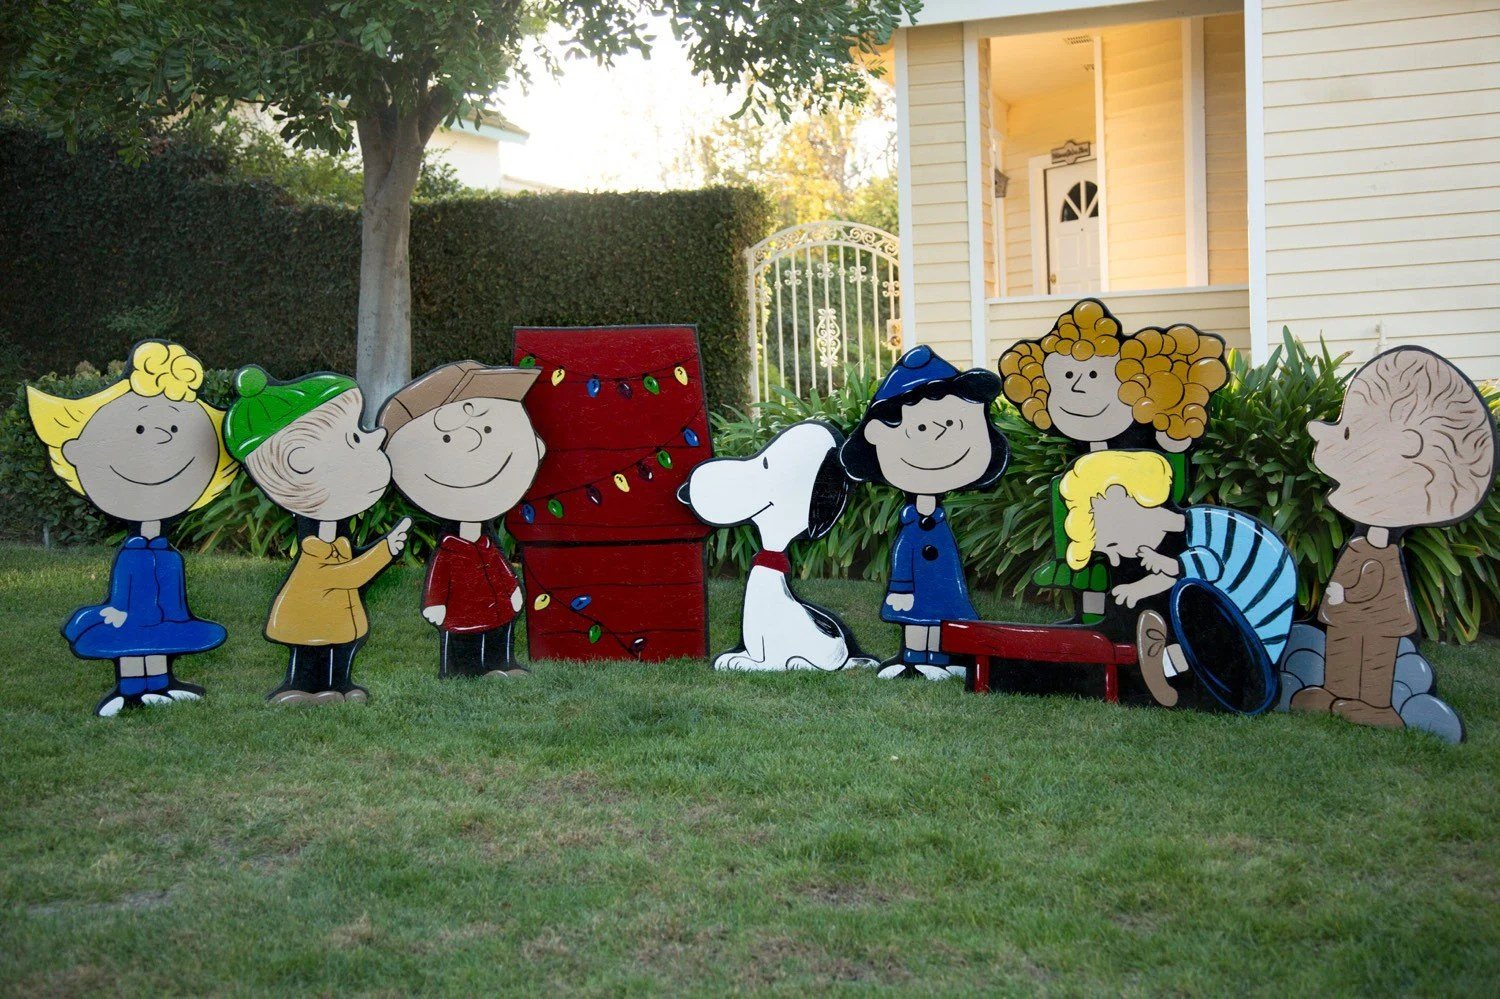 Charlie Brown Christmas Lawn Decorations - charlie brown christmas decorations